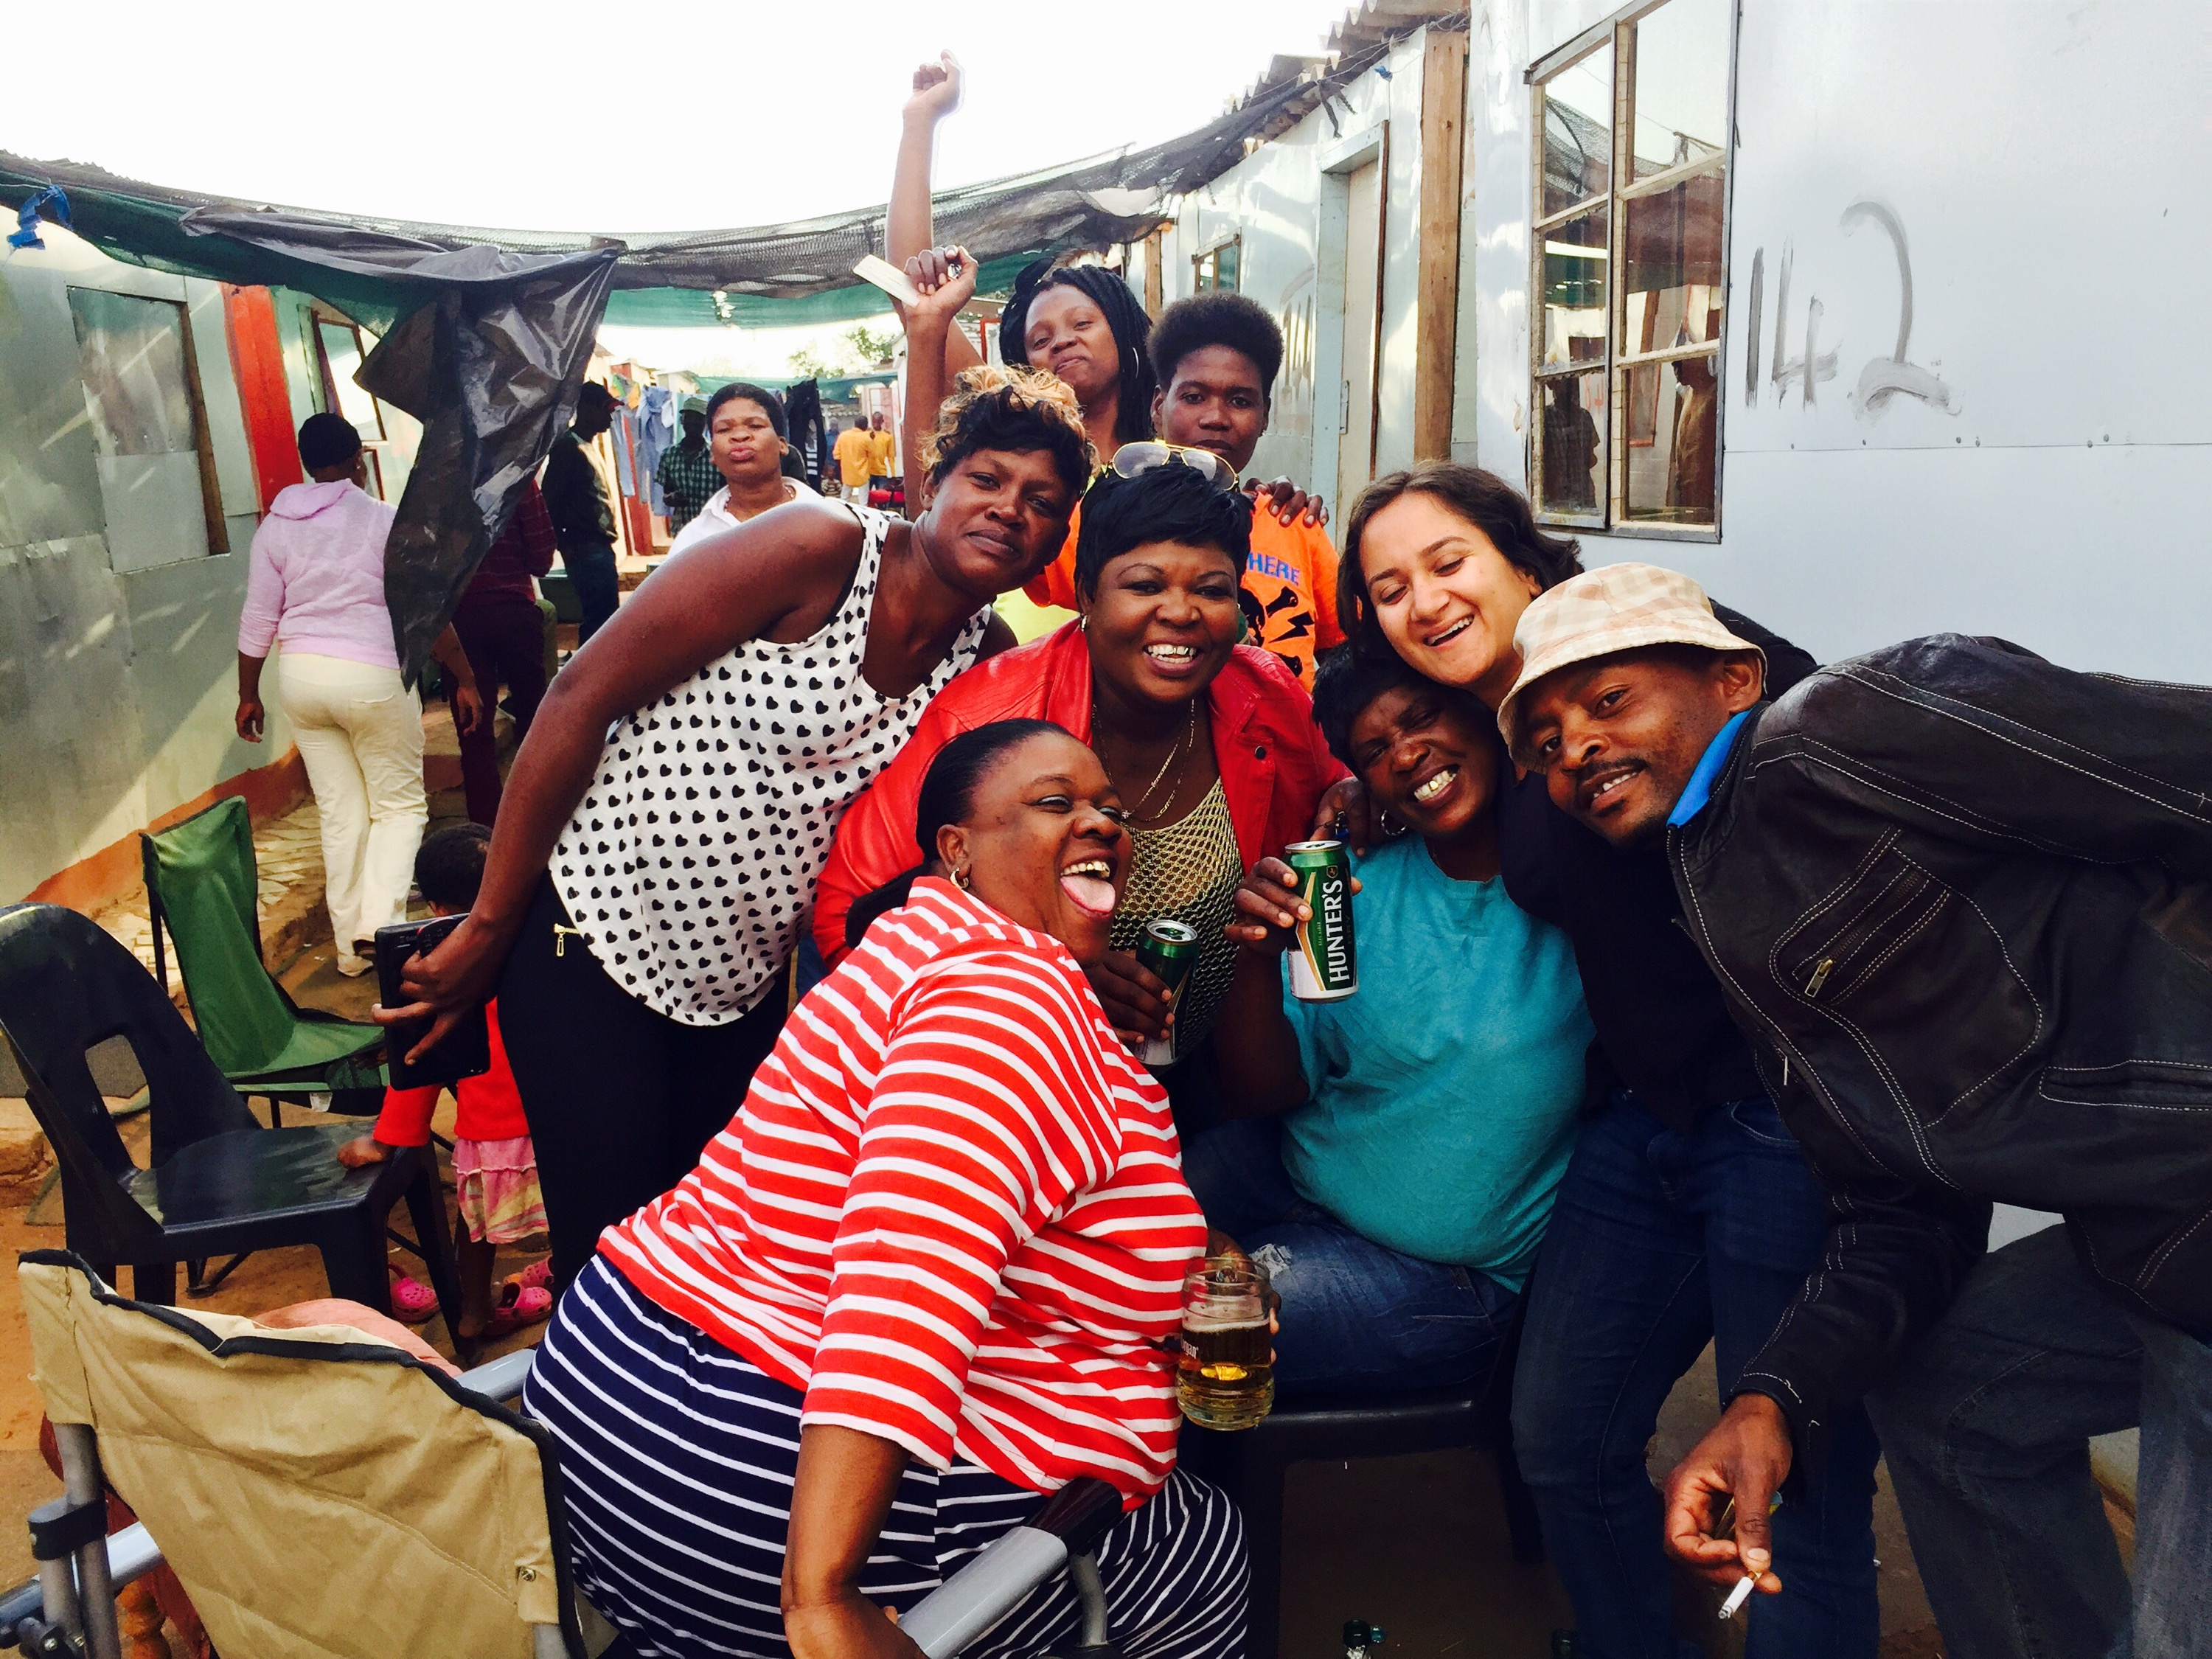 South Africa People